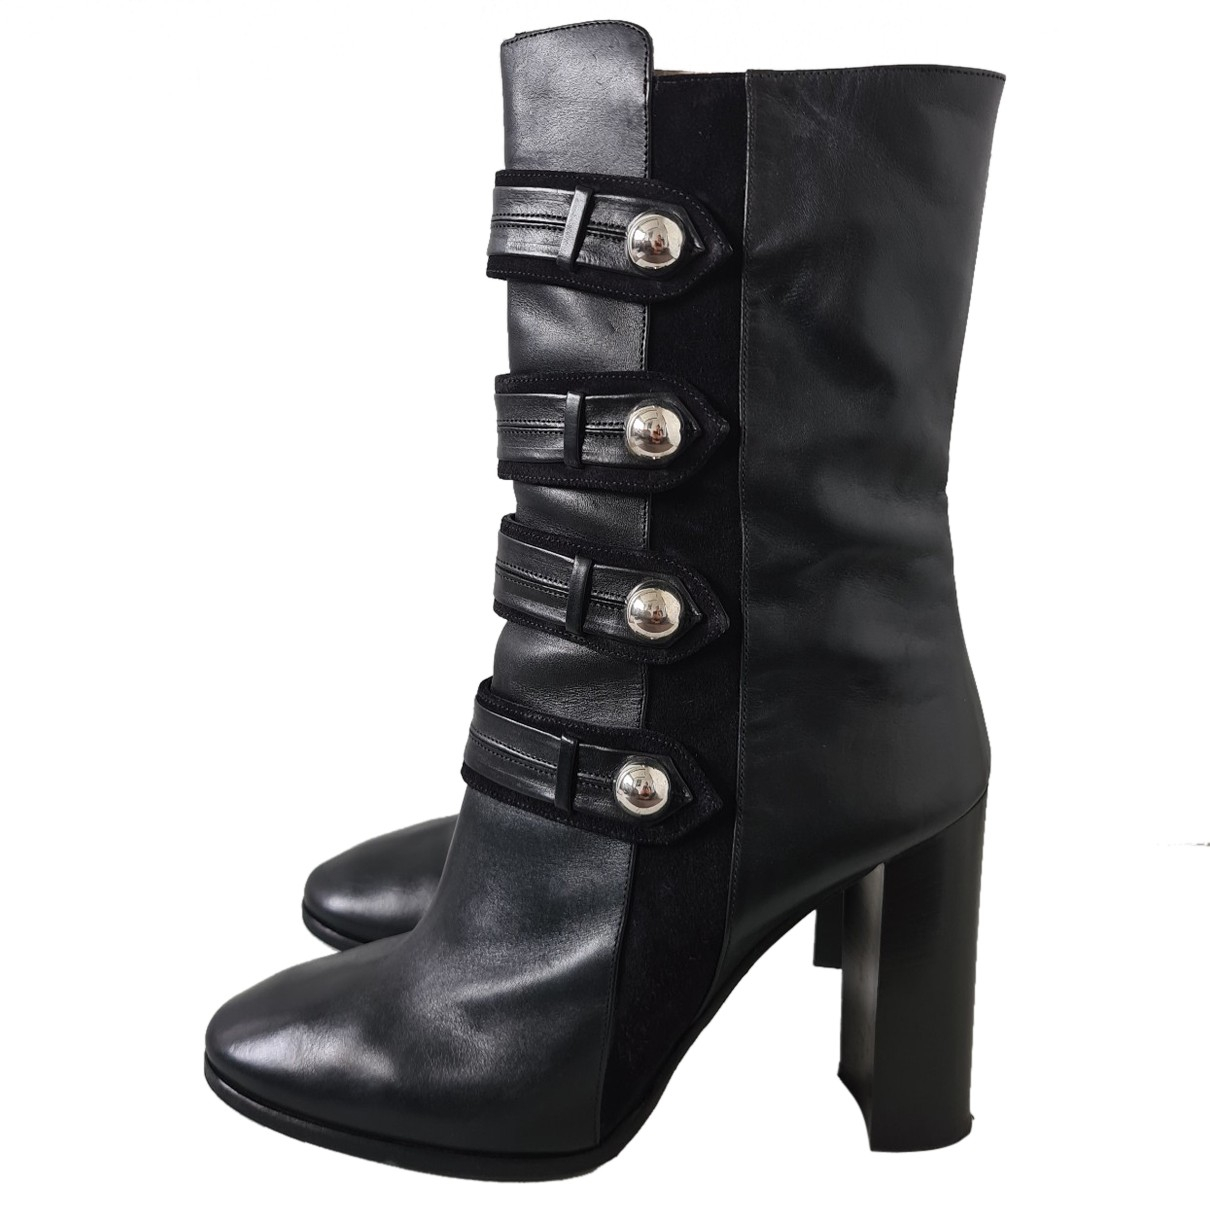 Isabel Marant N Black Leather Boots for Women 41 EU